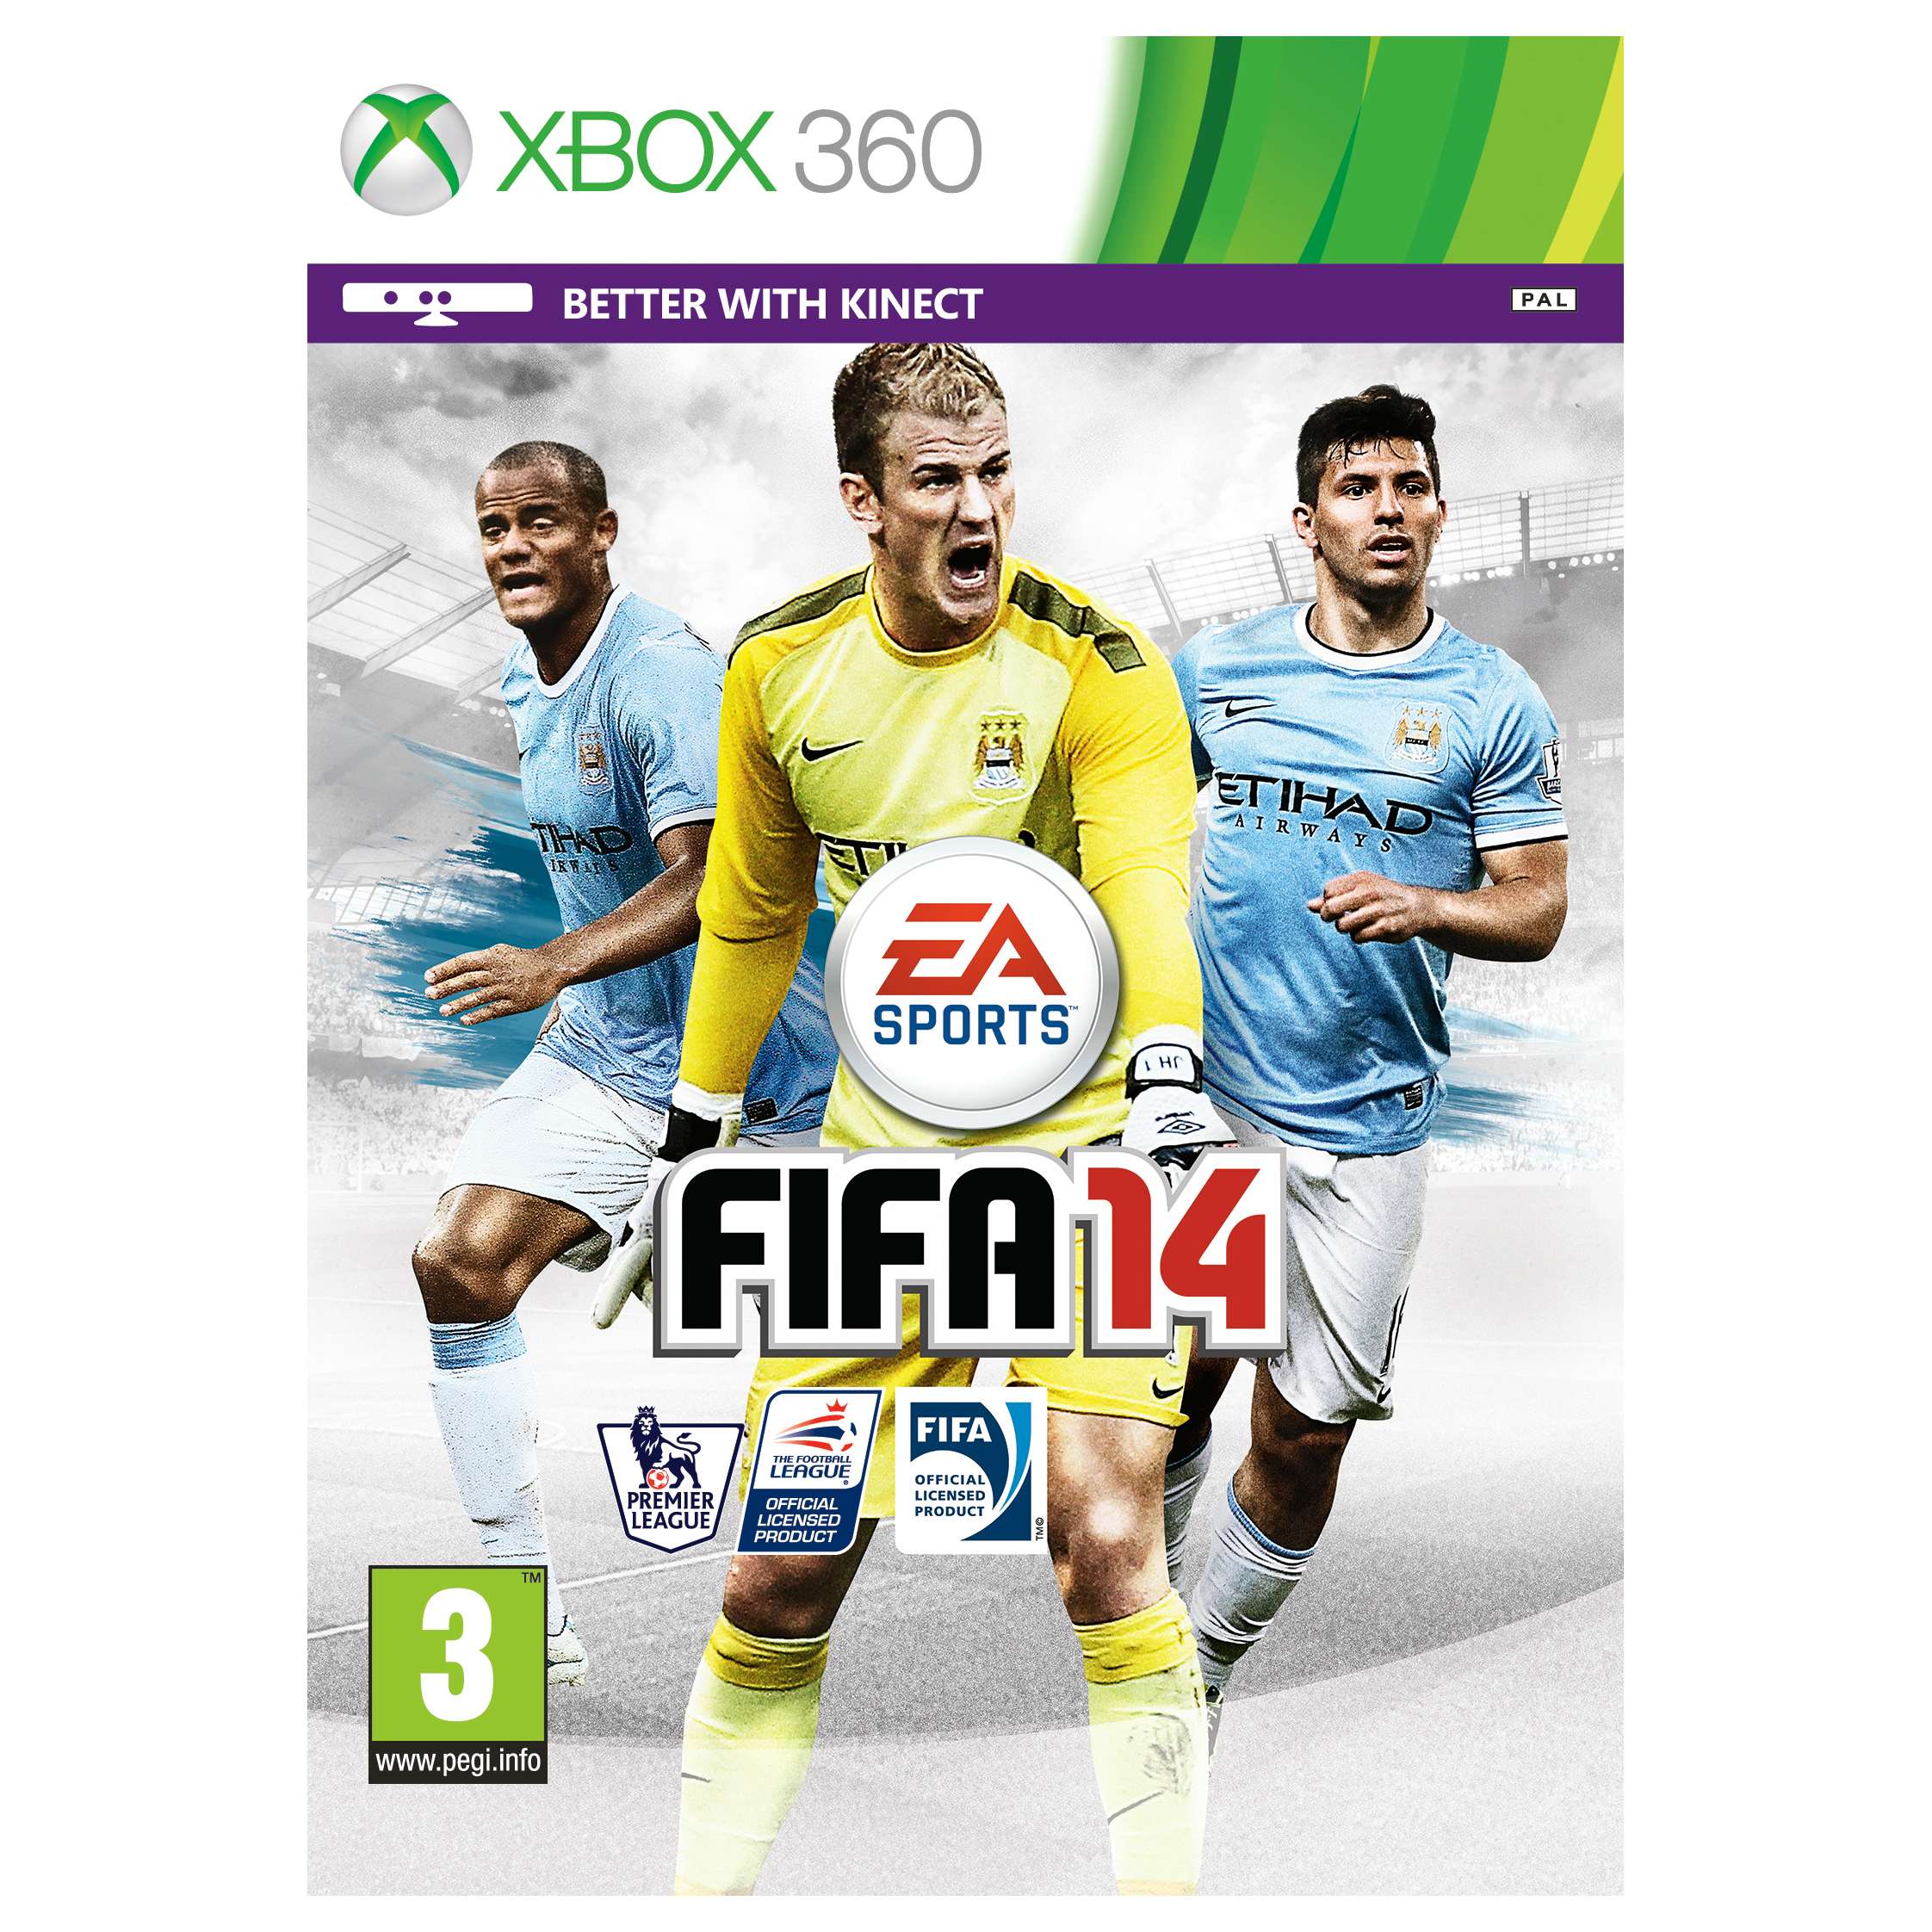 Manchester City Fifa 14 Xbox 360 Game - MCFC Exclusive Cover